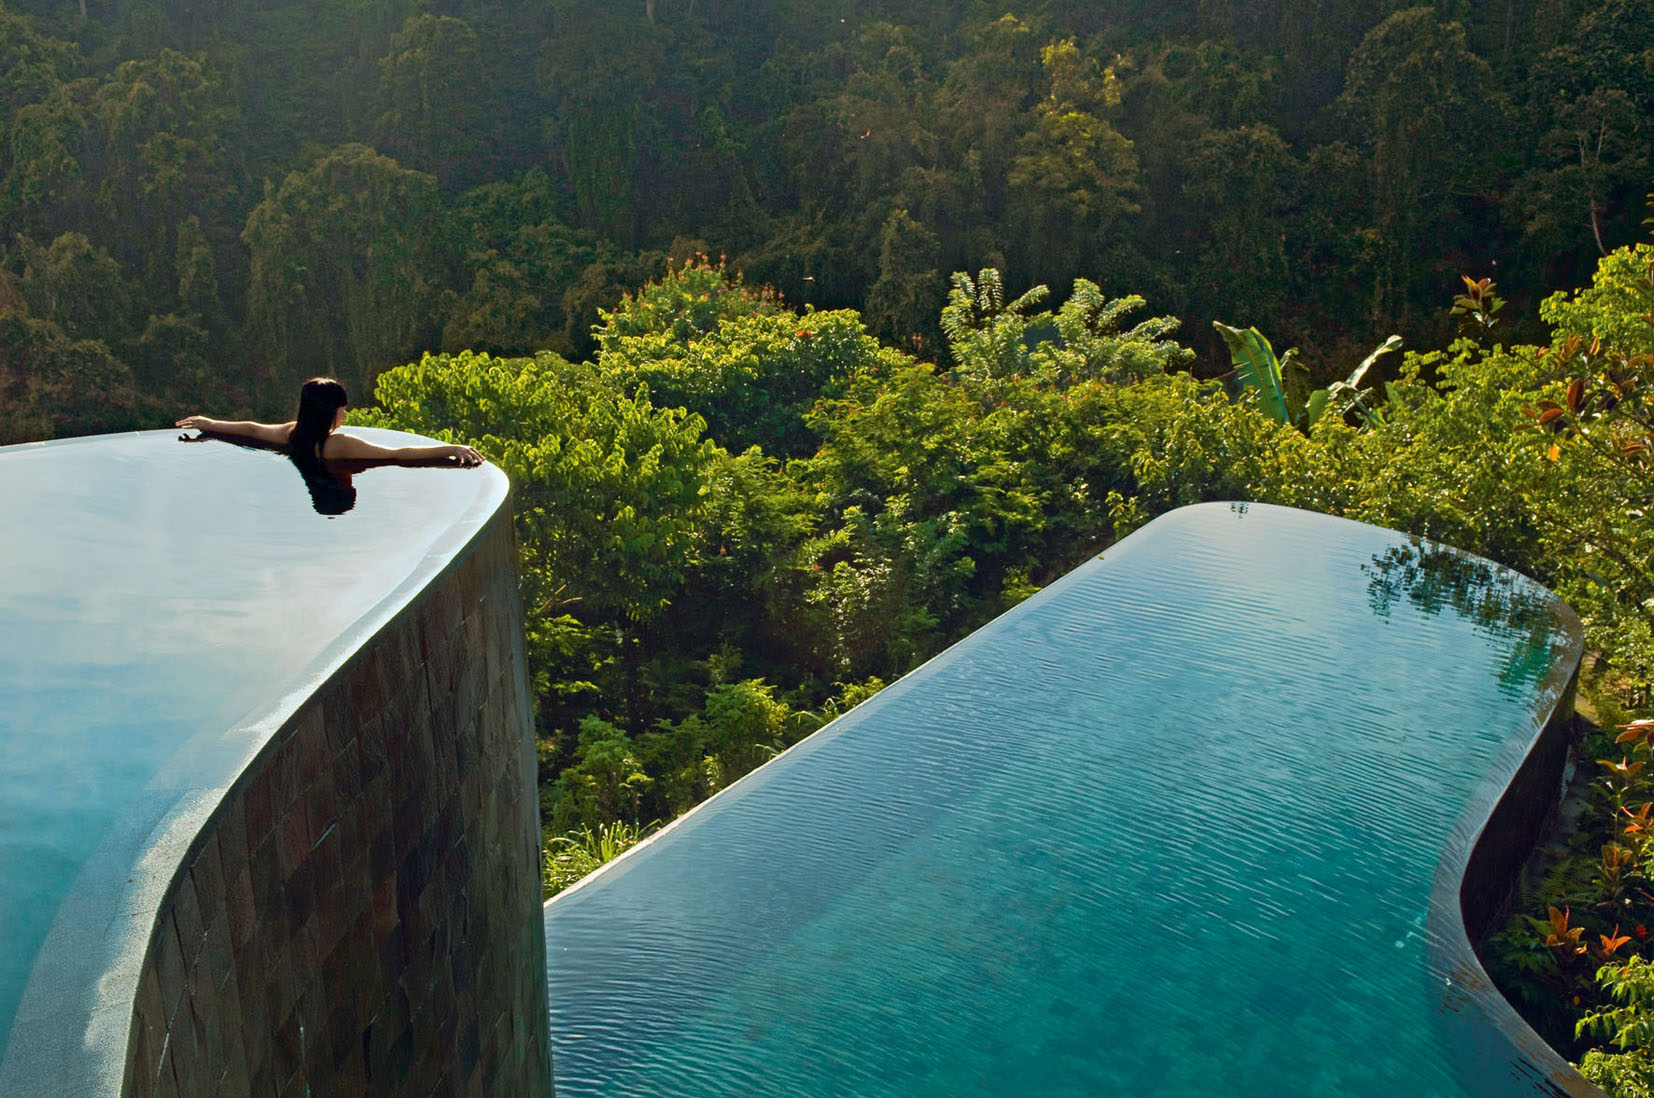 stackliving-most-beautiful-hotels-03-hanging-gardens-of-bali-01-infinity-pool